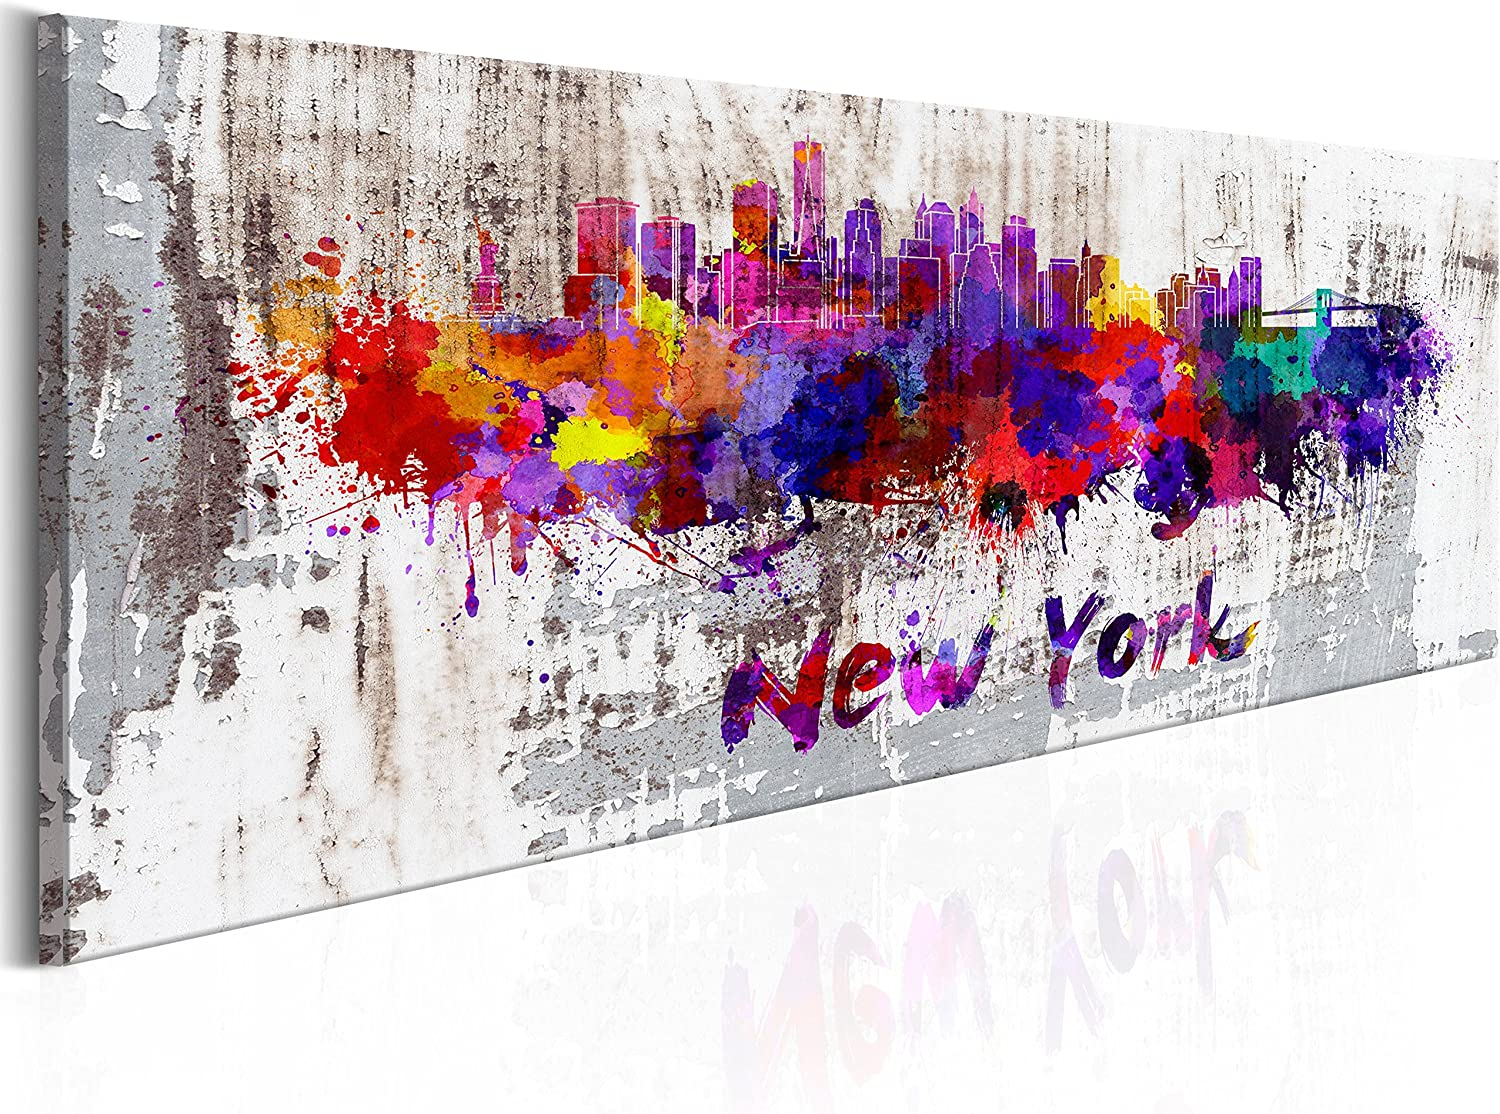 B/&D XXL murando Impression sur Toile intissee 120x40 cm 1 Piece Tableau Tableaux Decoration Murale Photo Image Artistique Photographie Graphique Abstraction Abstrait New York d-B-0047-b-a